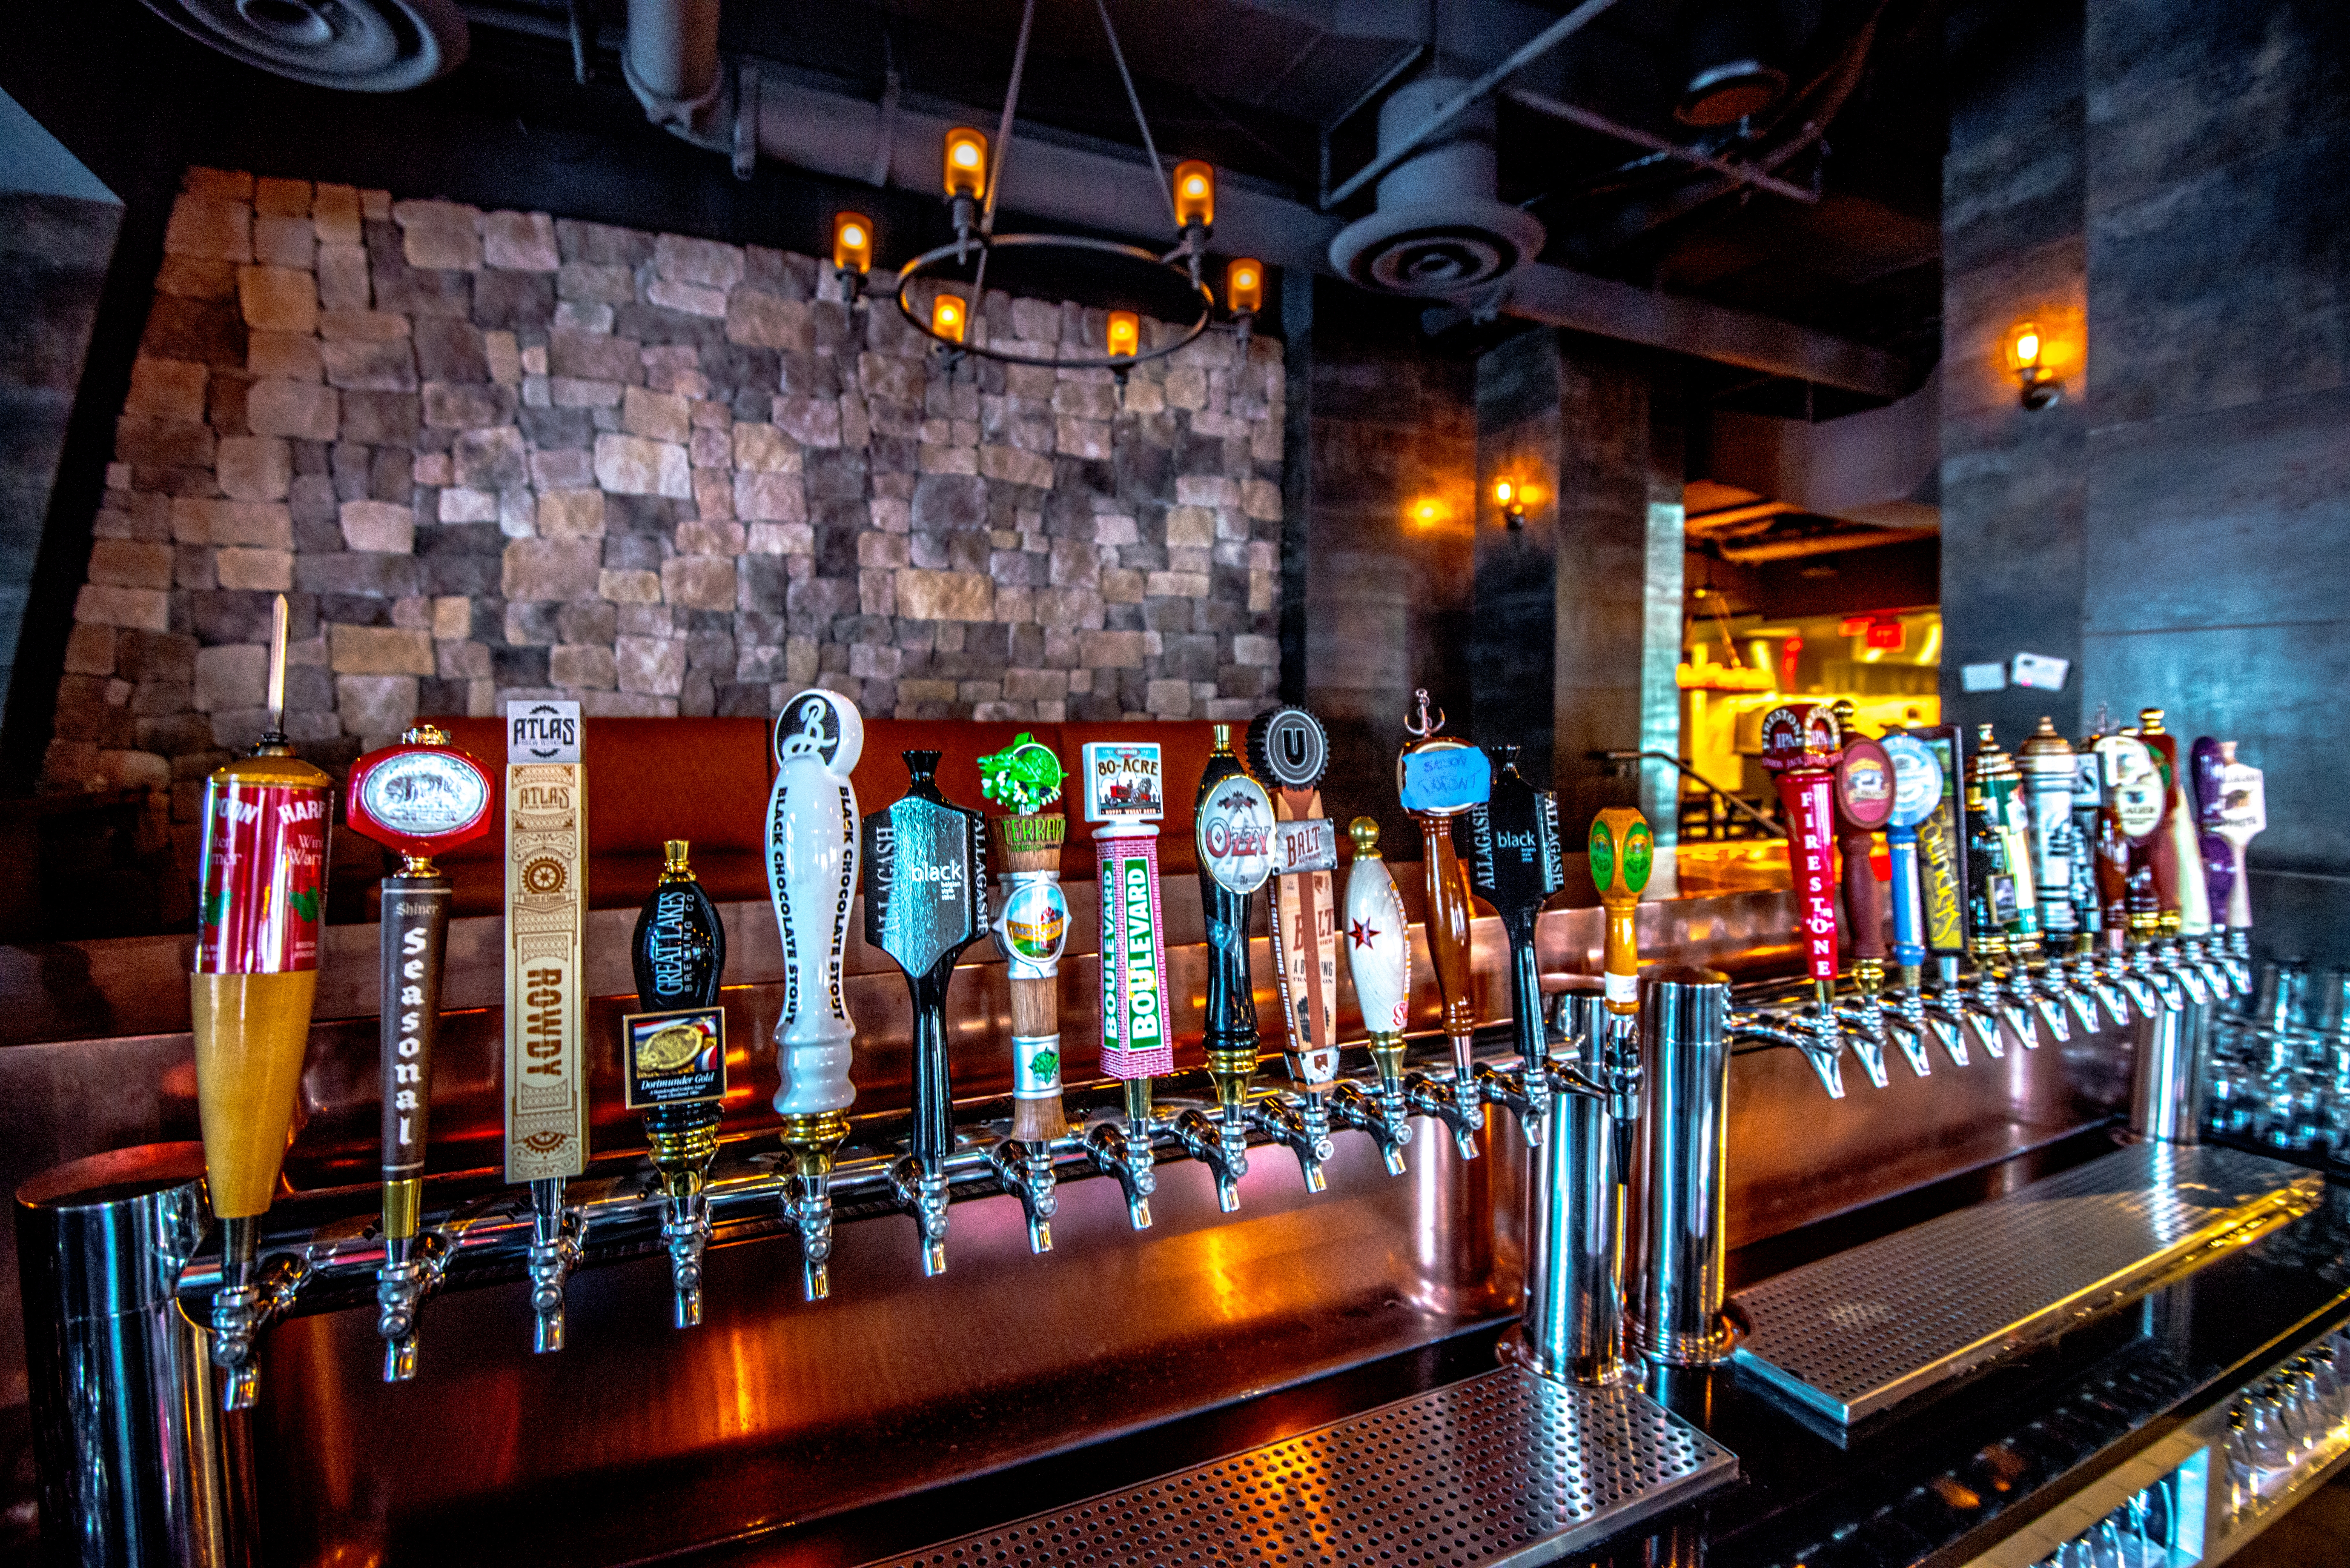 City Tap House will host a sour beer takeover on Thursday. (Photo: Dan Swartz)